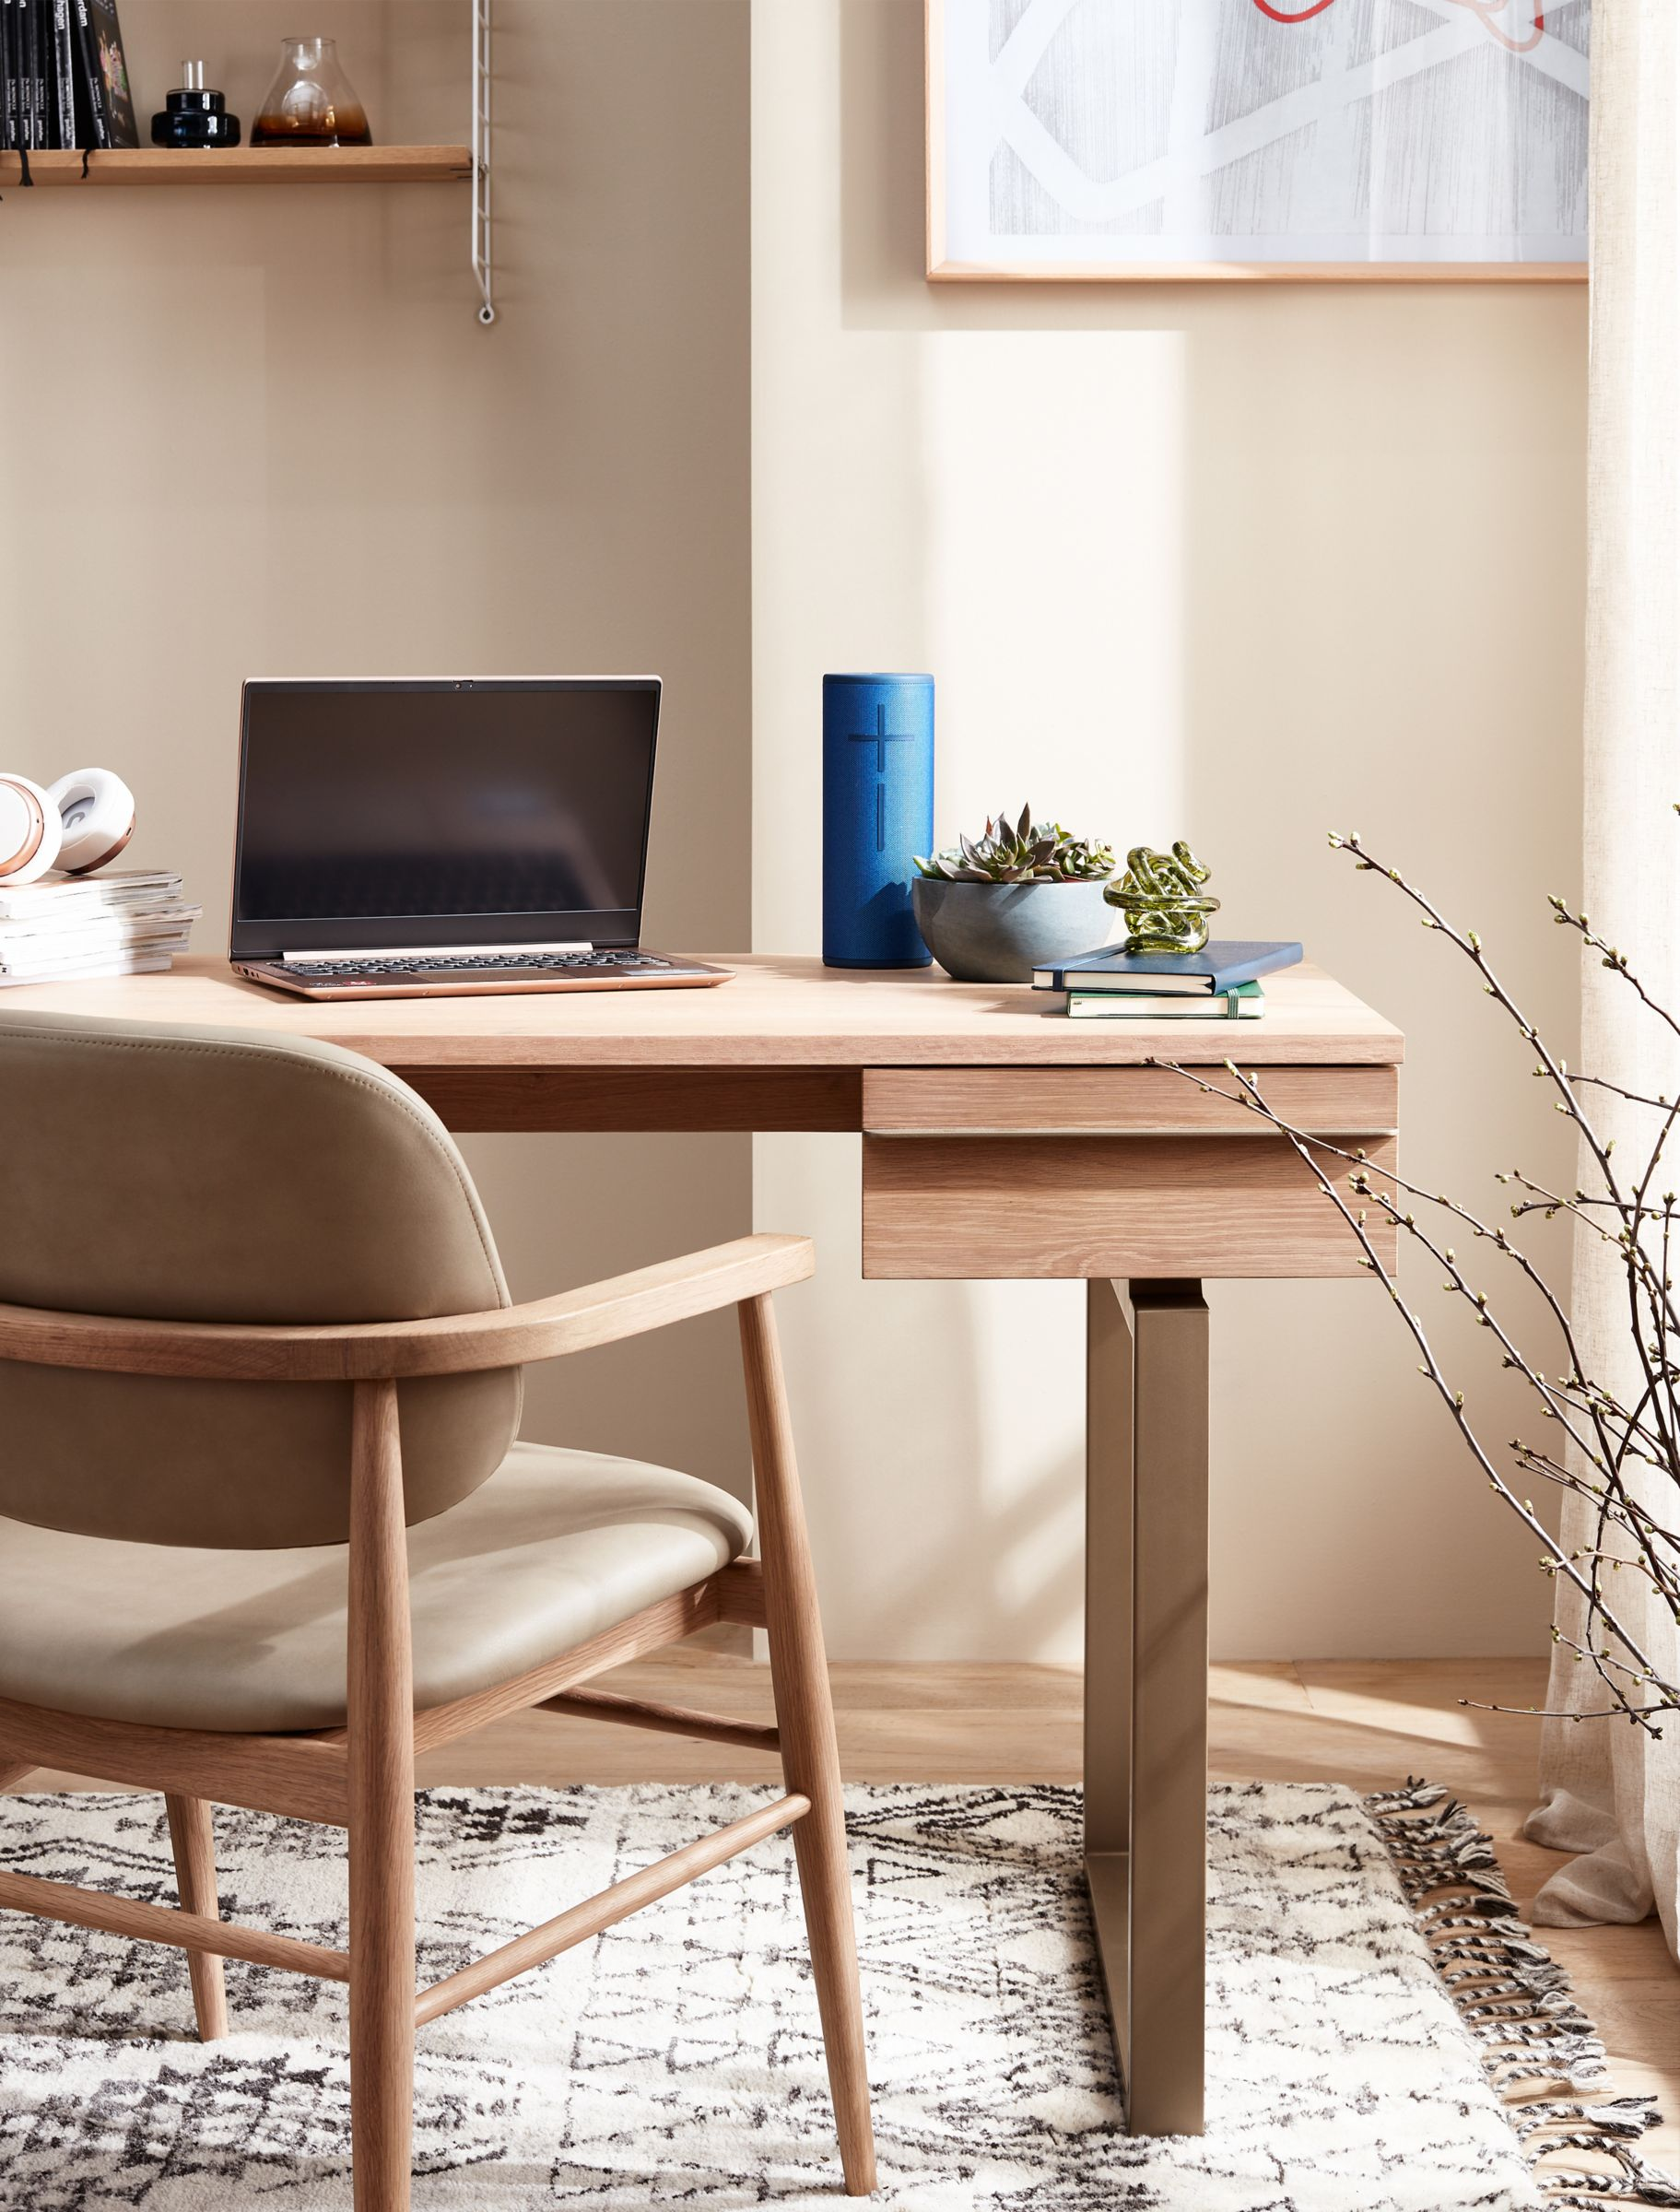 How to design a home office that is practical and stylish